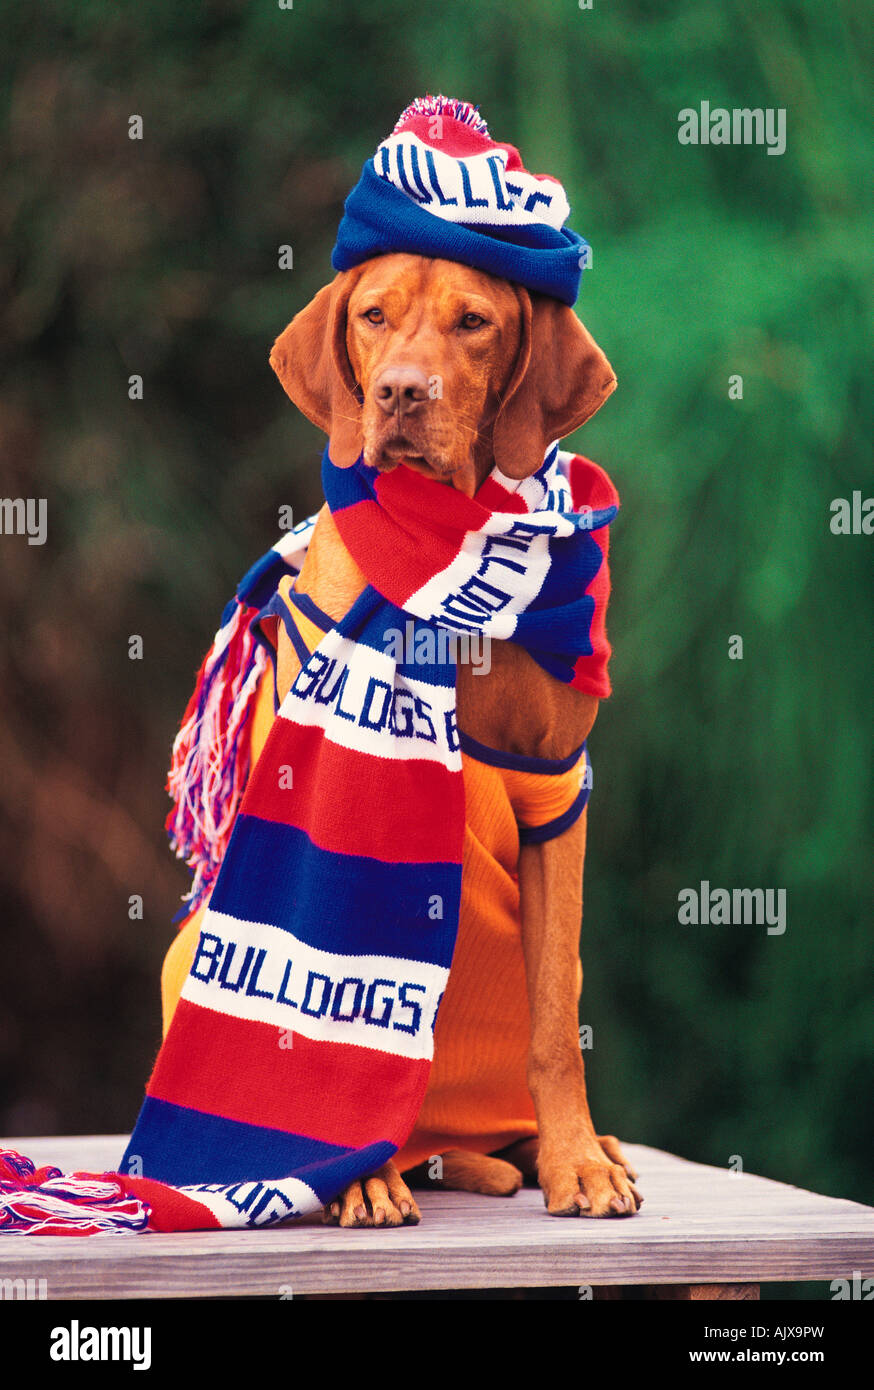 Animal chien Visla hongrois habillé en vêtements de l'équipe de football de supports. Concept Photo Stock